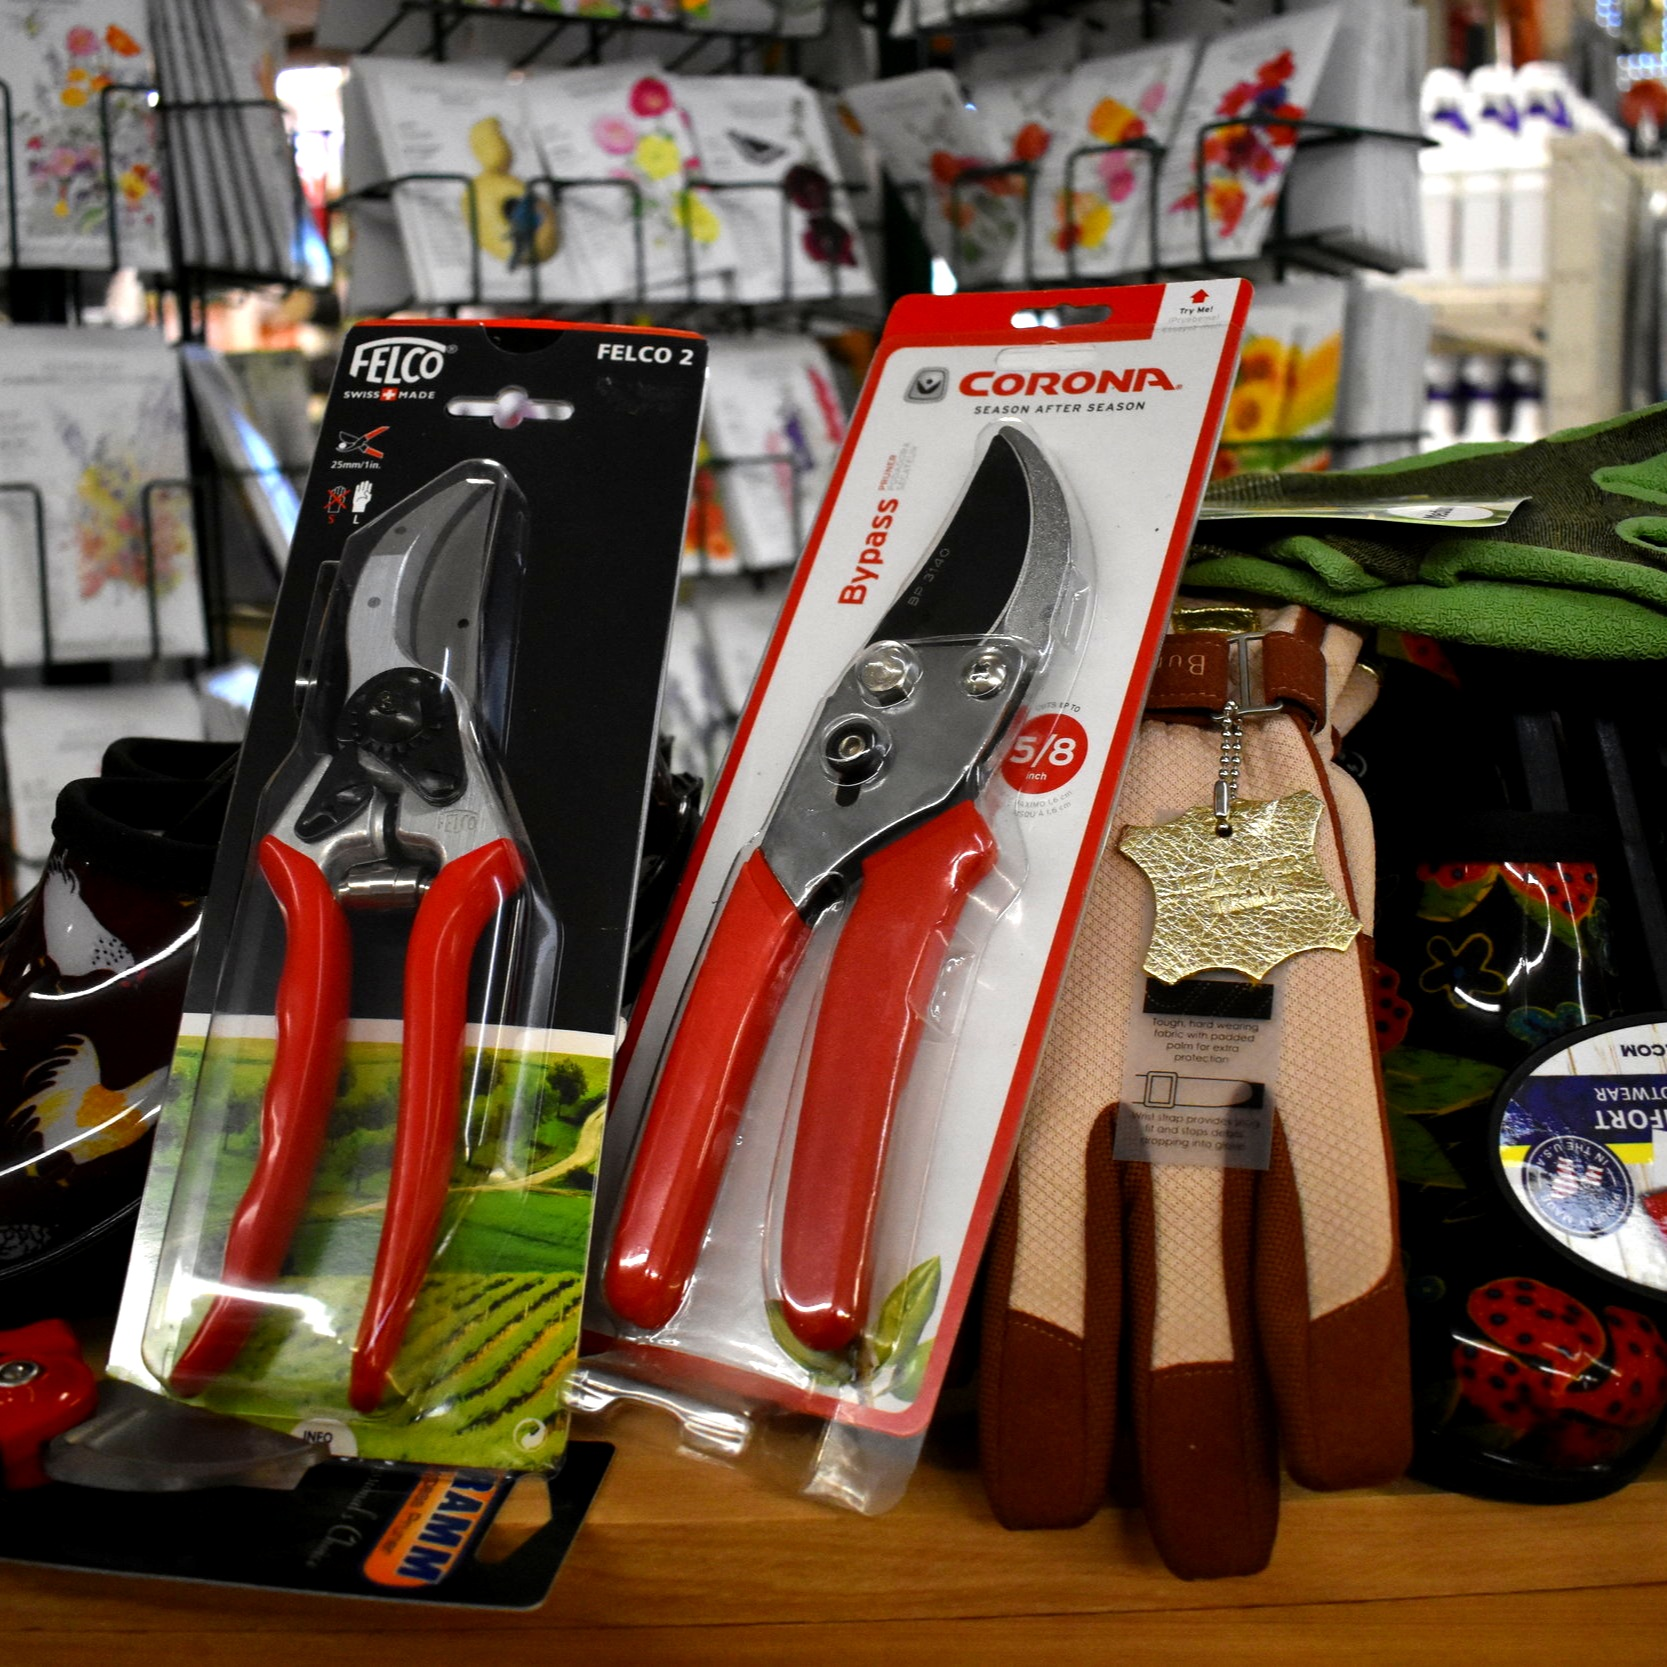 Quality Pruners, Gloves, and Many More Gardening Supplies!